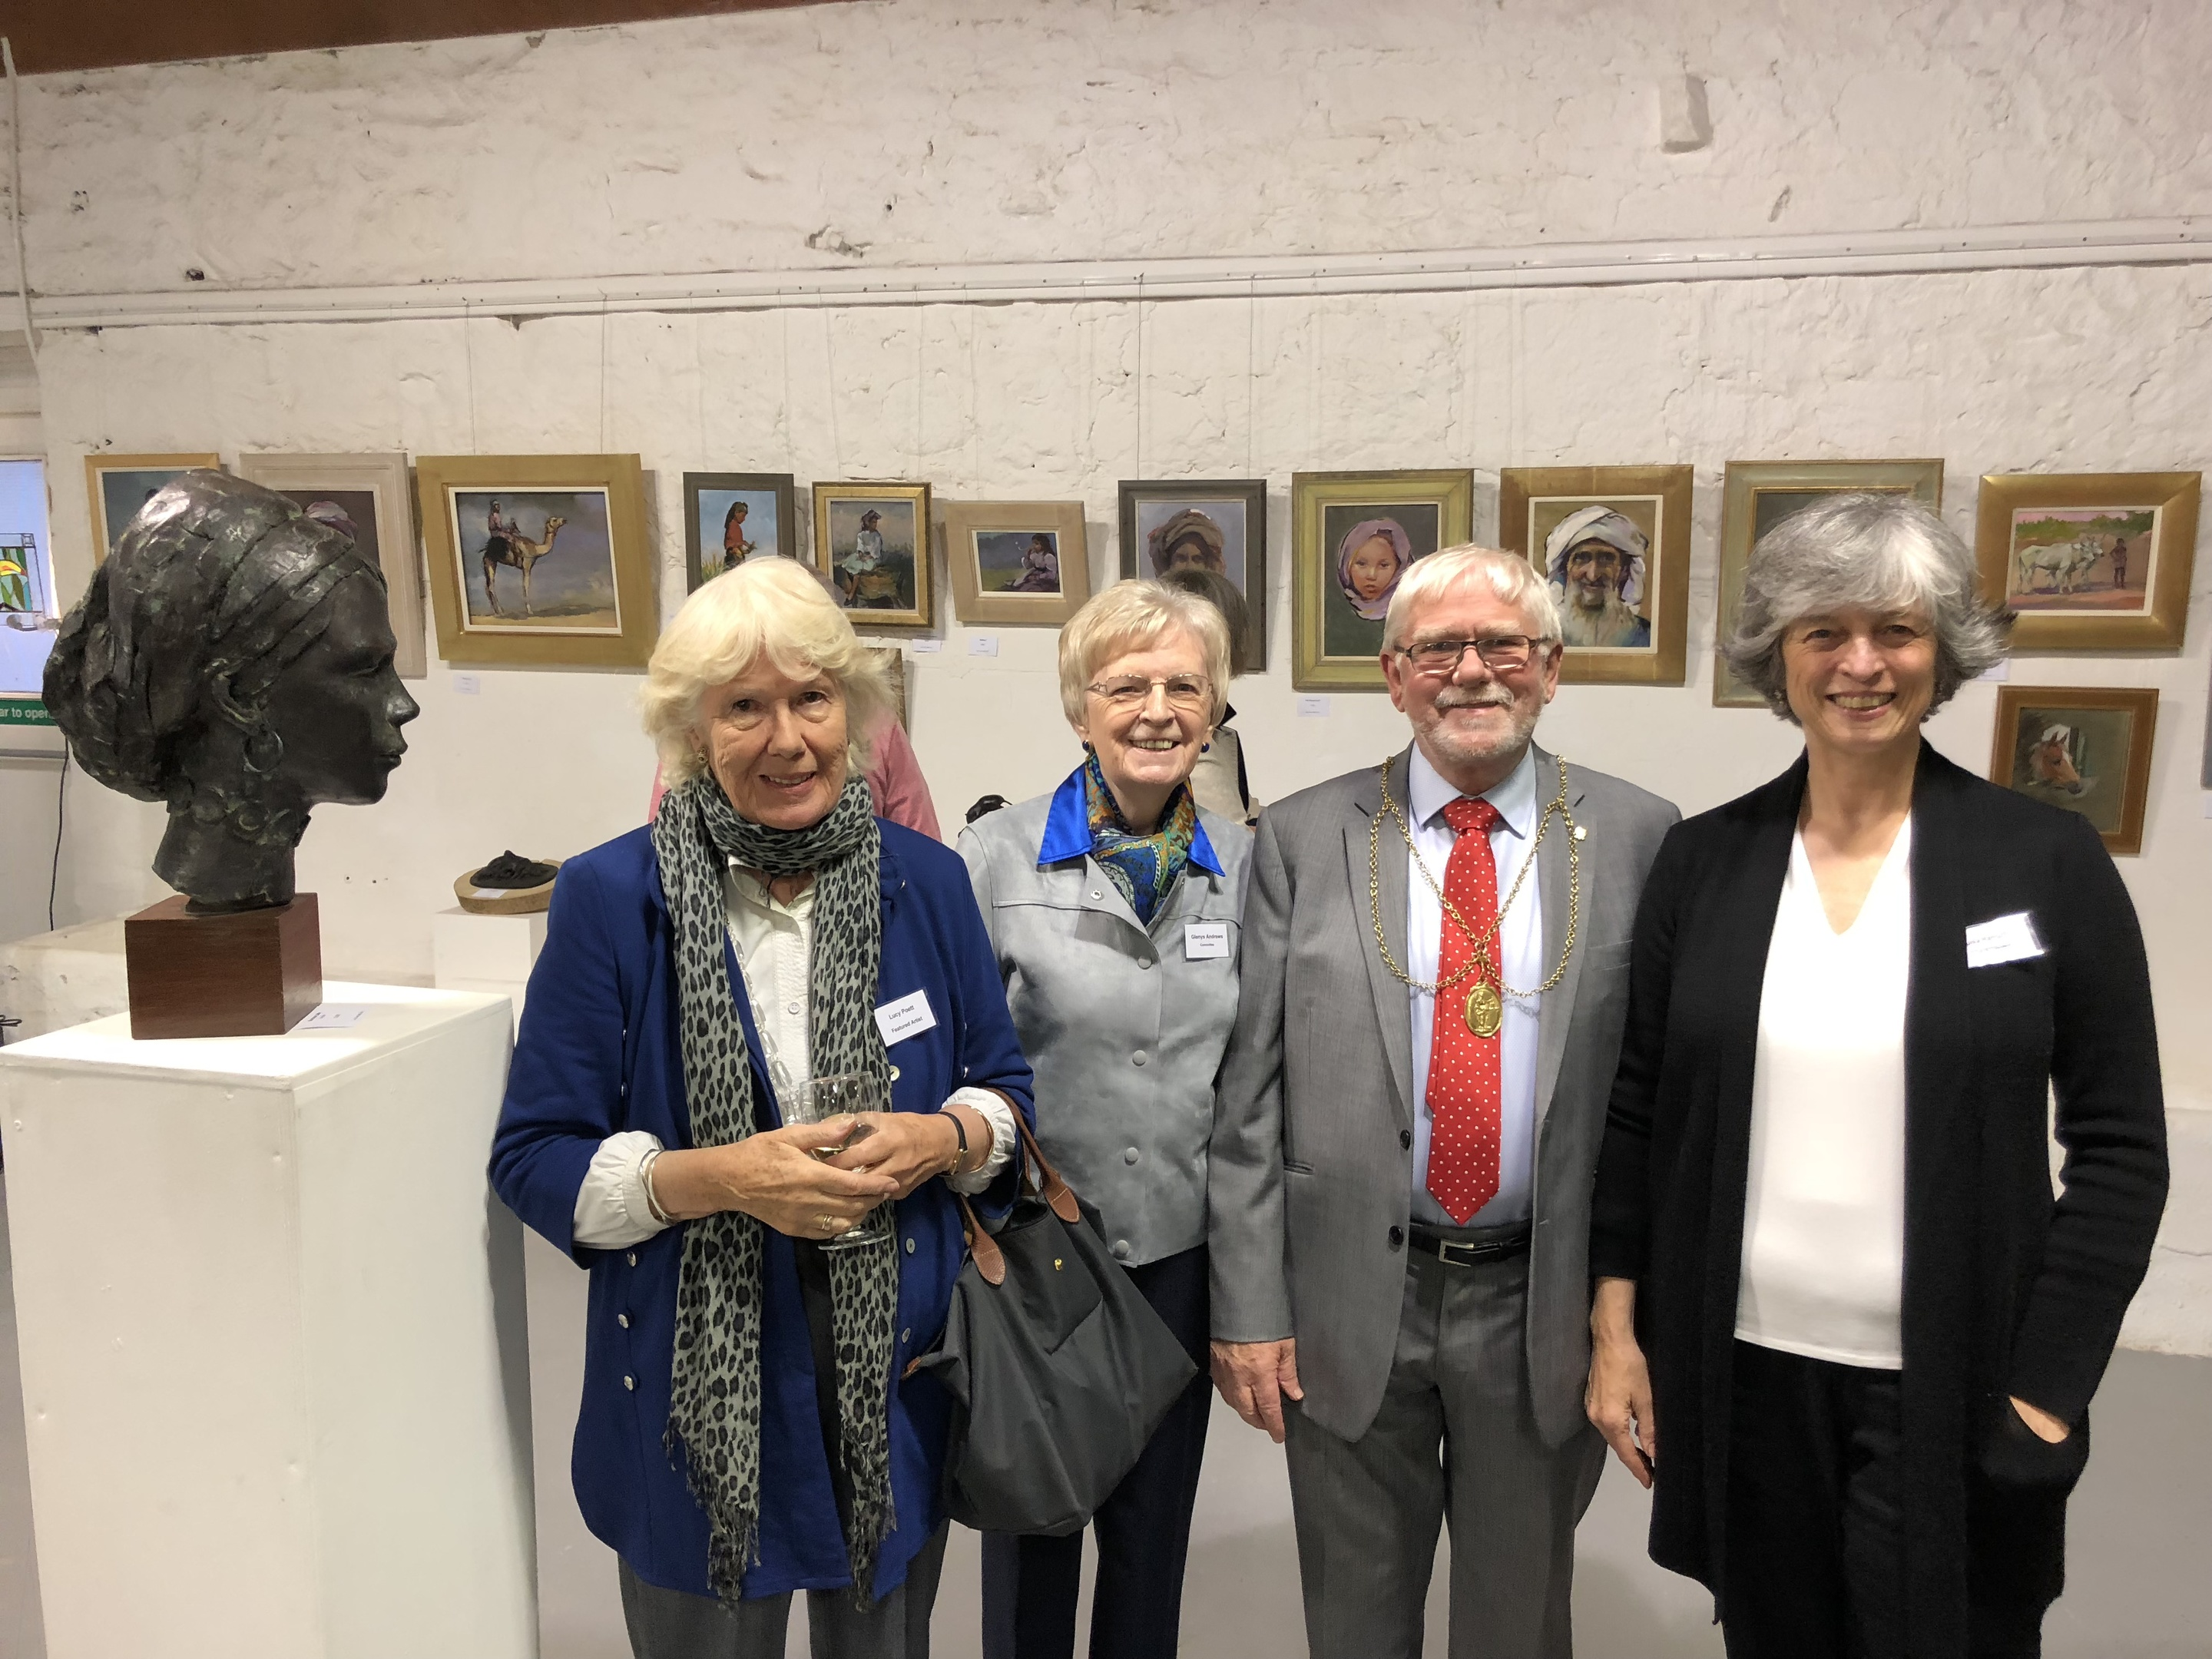 Celebrating the Perthshire Open Studios launch from left are: Lucy Poett, featured artist, Glenys Andrews, POS  president, Provost Dennis Melloy and  Luisa Ramazzotti, outgoing POS president.